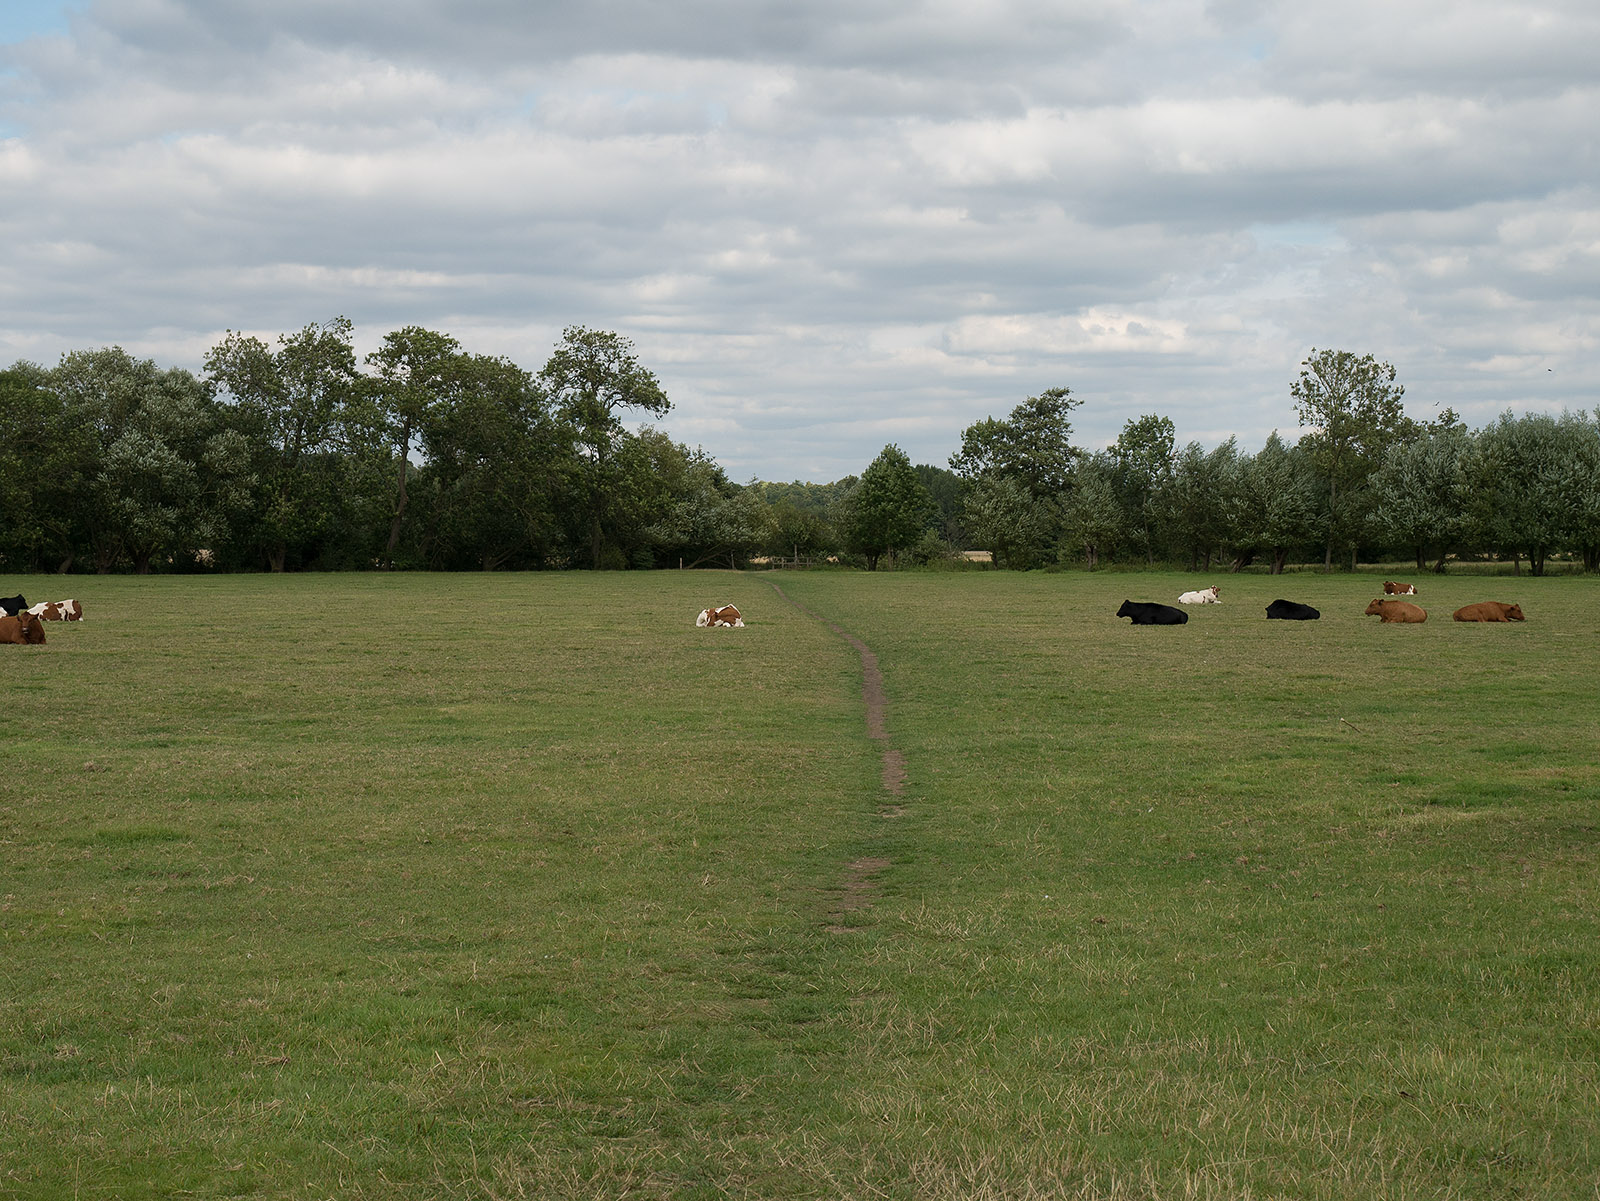 Looking back across the field where we have diverted inland towards Culham Court